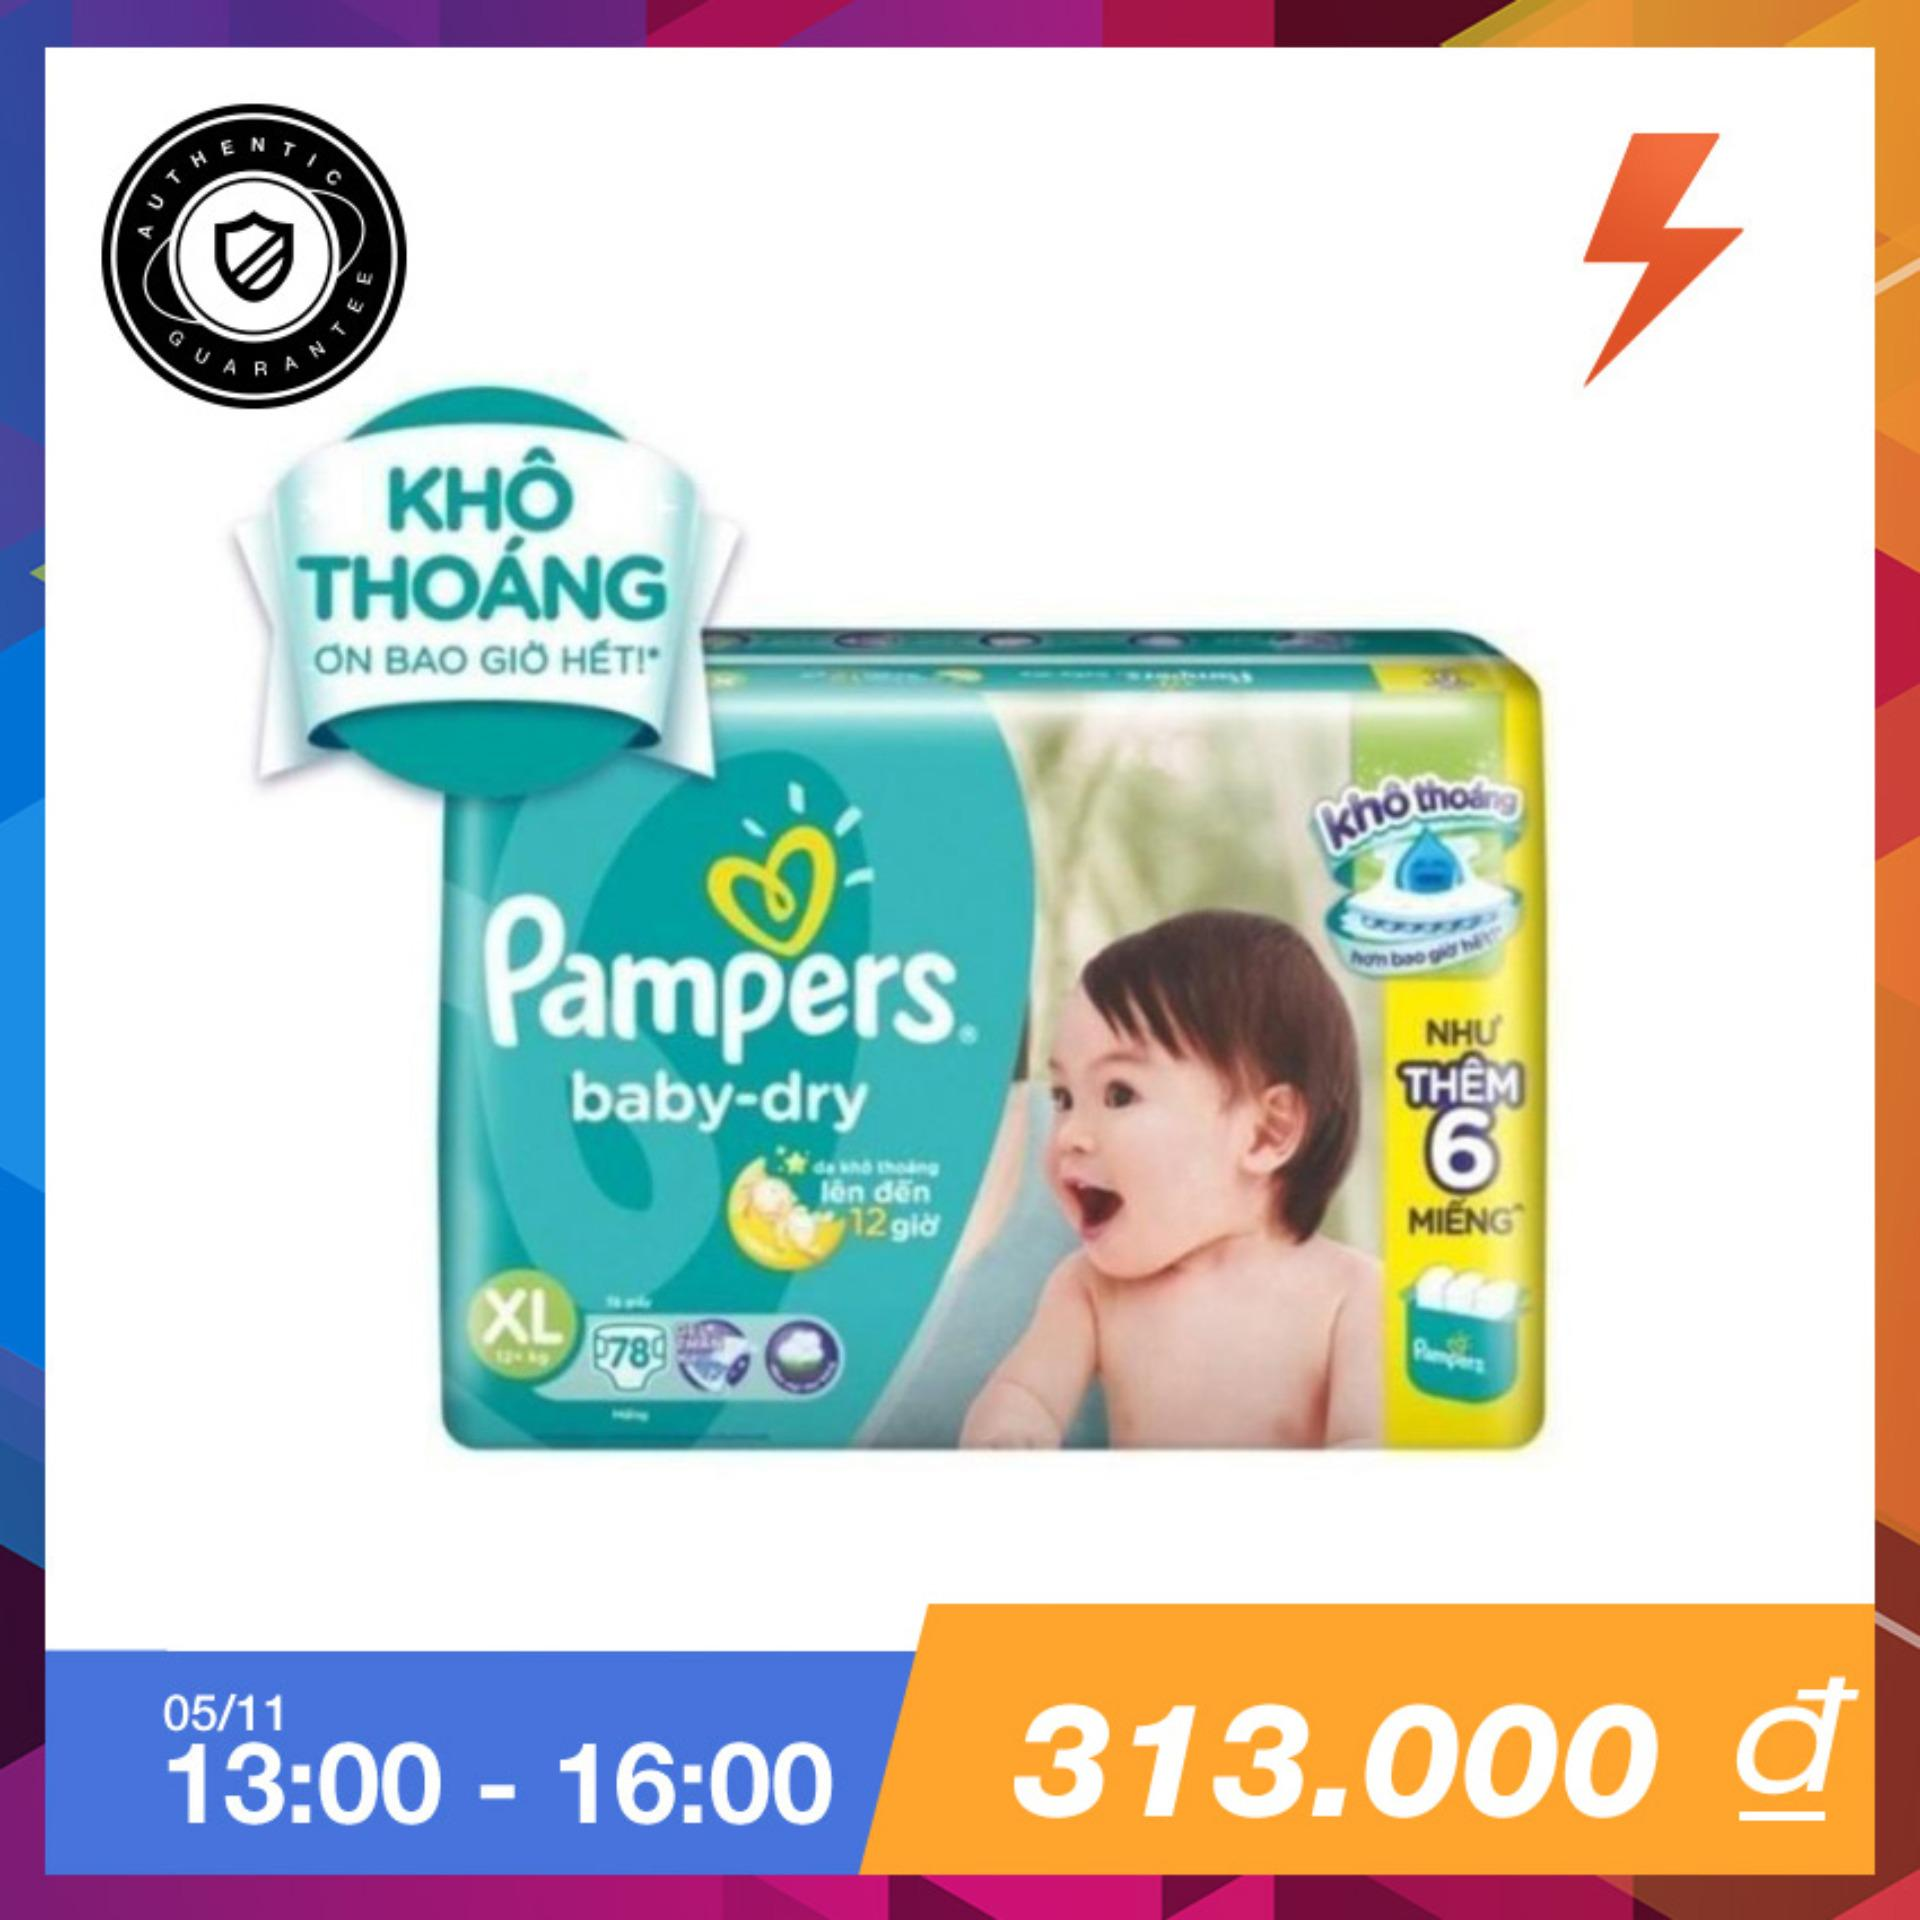 Mua Ta Dan Pampers Size Xl 78 Miếng Tren 12 Kg Pampers Rẻ